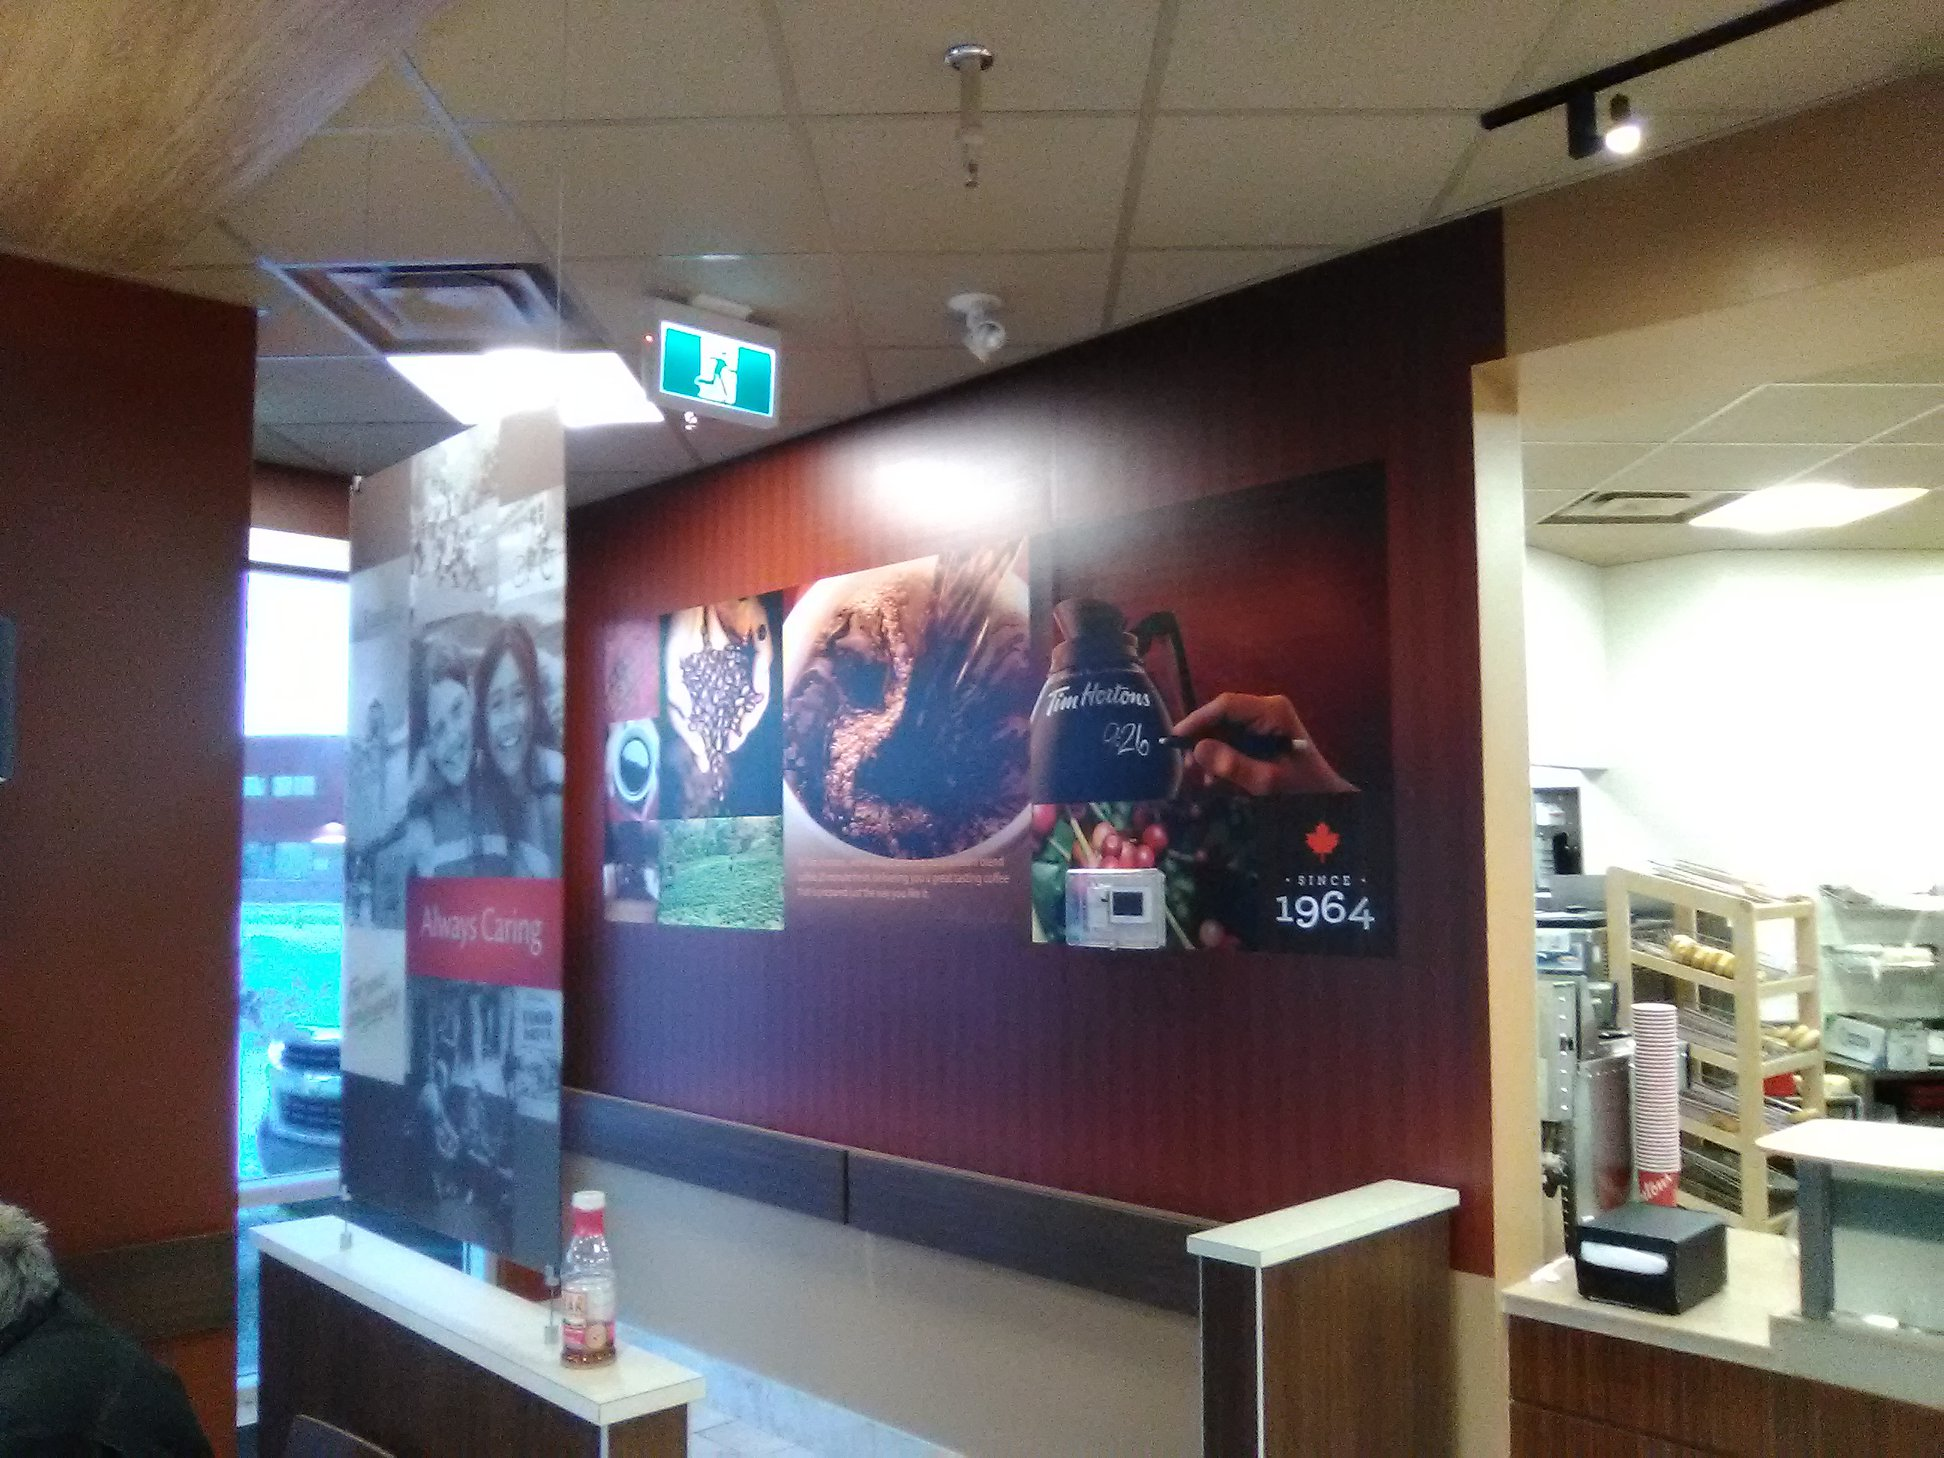 Time Hortons interior signage for downtown location.